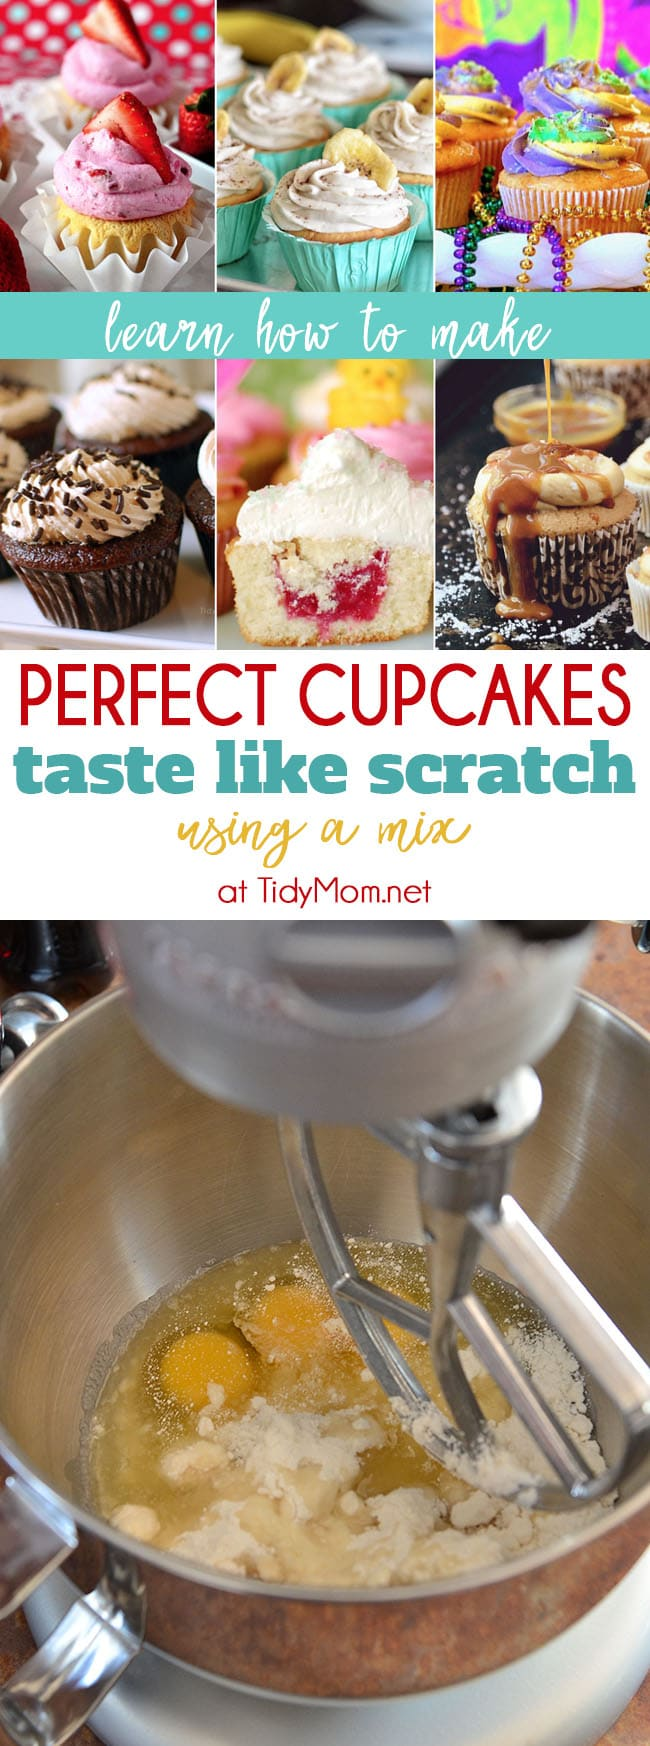 Perfect Cupcake Recipe using a box mix is my all time favorite, go to recipe for cupcakes. You can use this trick to make a box cake mix make cupcakes and cake taste like they are made from scratch. Learn more at TidyMom.net #cupcakes #cake #homemade #kitchentips